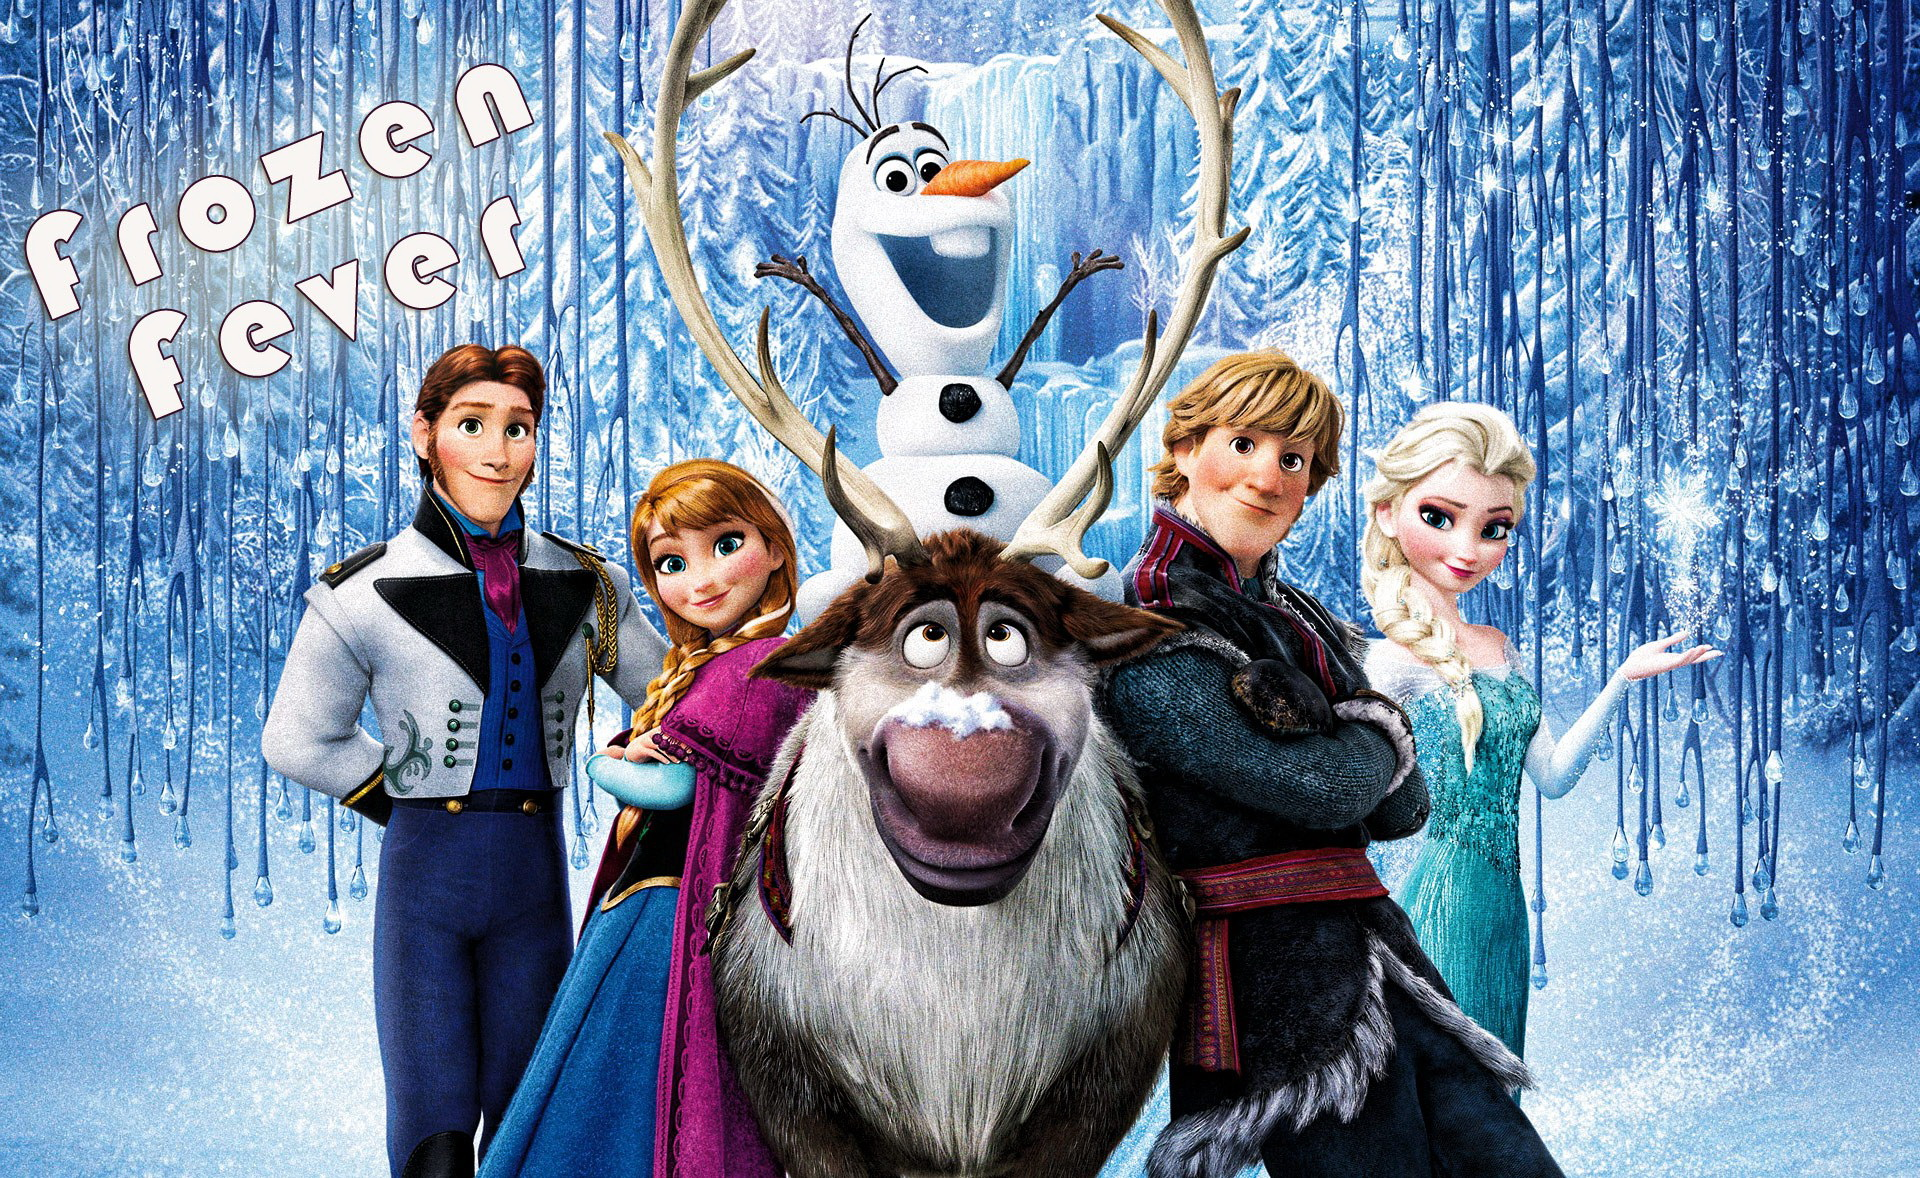 Frozen Fever Full HD Fondo De Pantalla And Fondo De